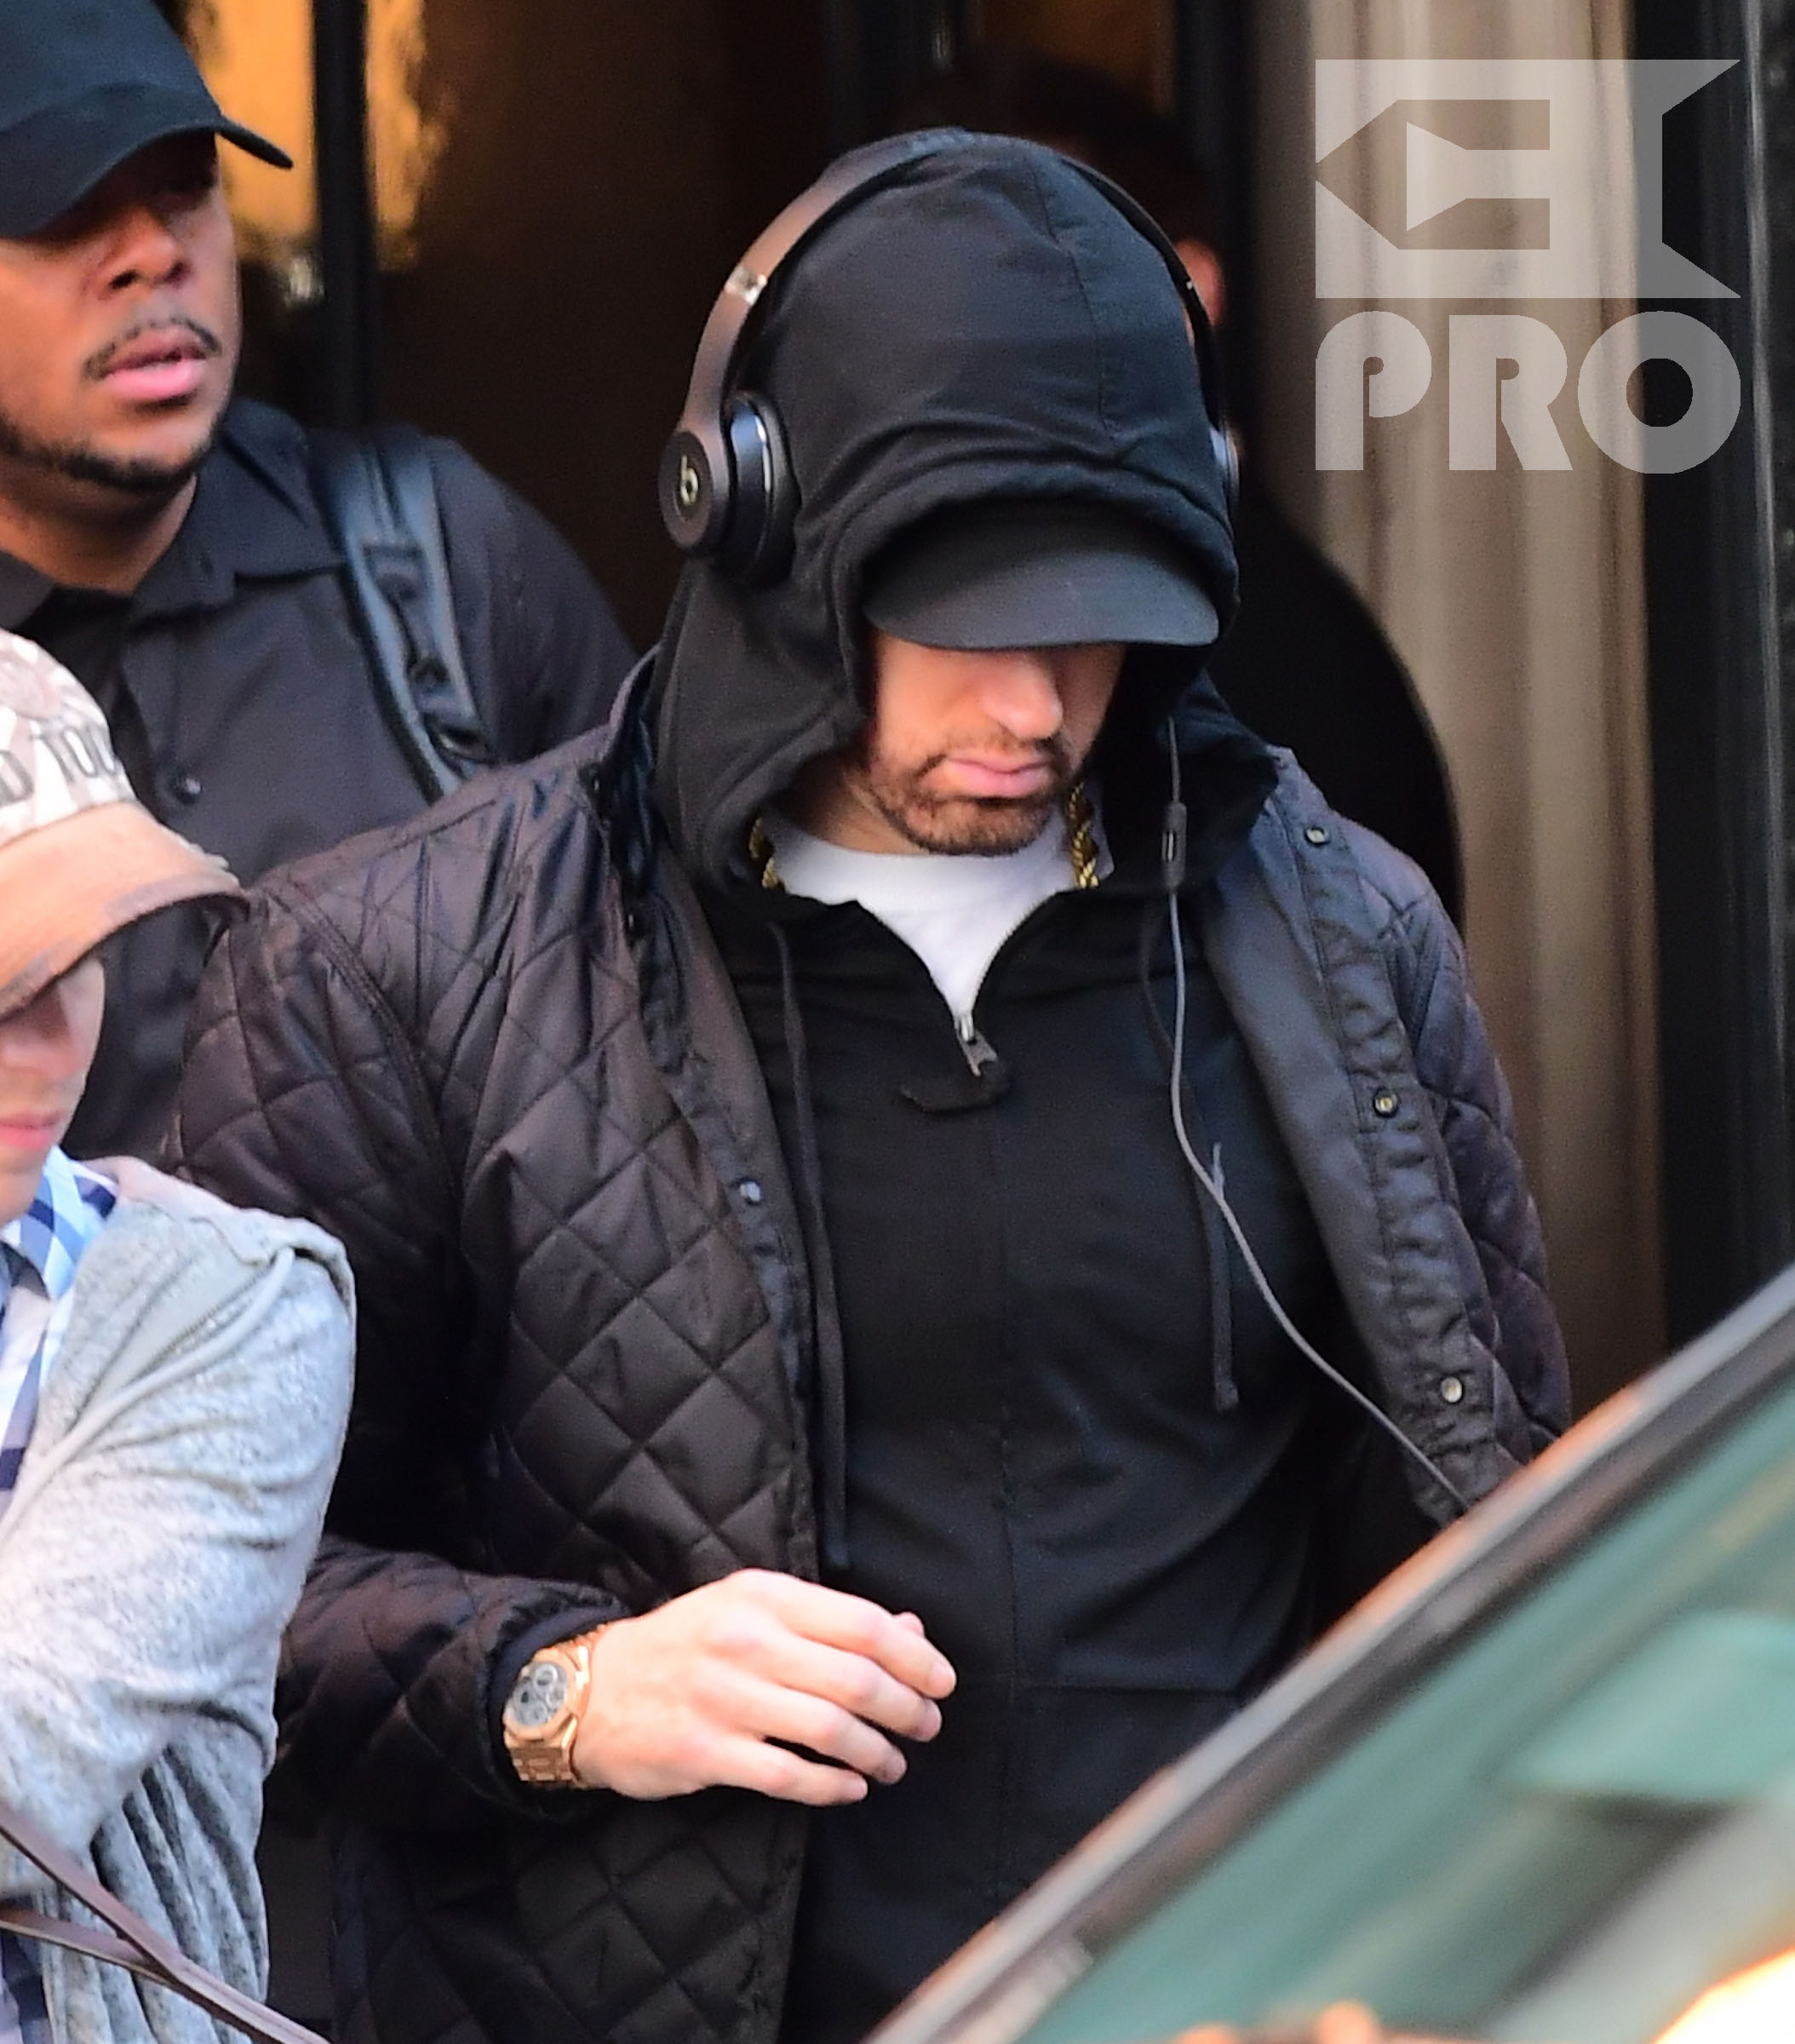 EXCLUSIVE: Eminem is notorious for his low-key lifestyle, so seeing him in public in NYC on Thursday was extremely rare. The rapper went incognito in a jacket, hoodie and baseball cap as he left a hotel in Manhattan surrounded by security guards. His face could be seen under his cap, and he appeared to be extremely tired, as he headed to an early morning rehearsal for Saturday Night Live.